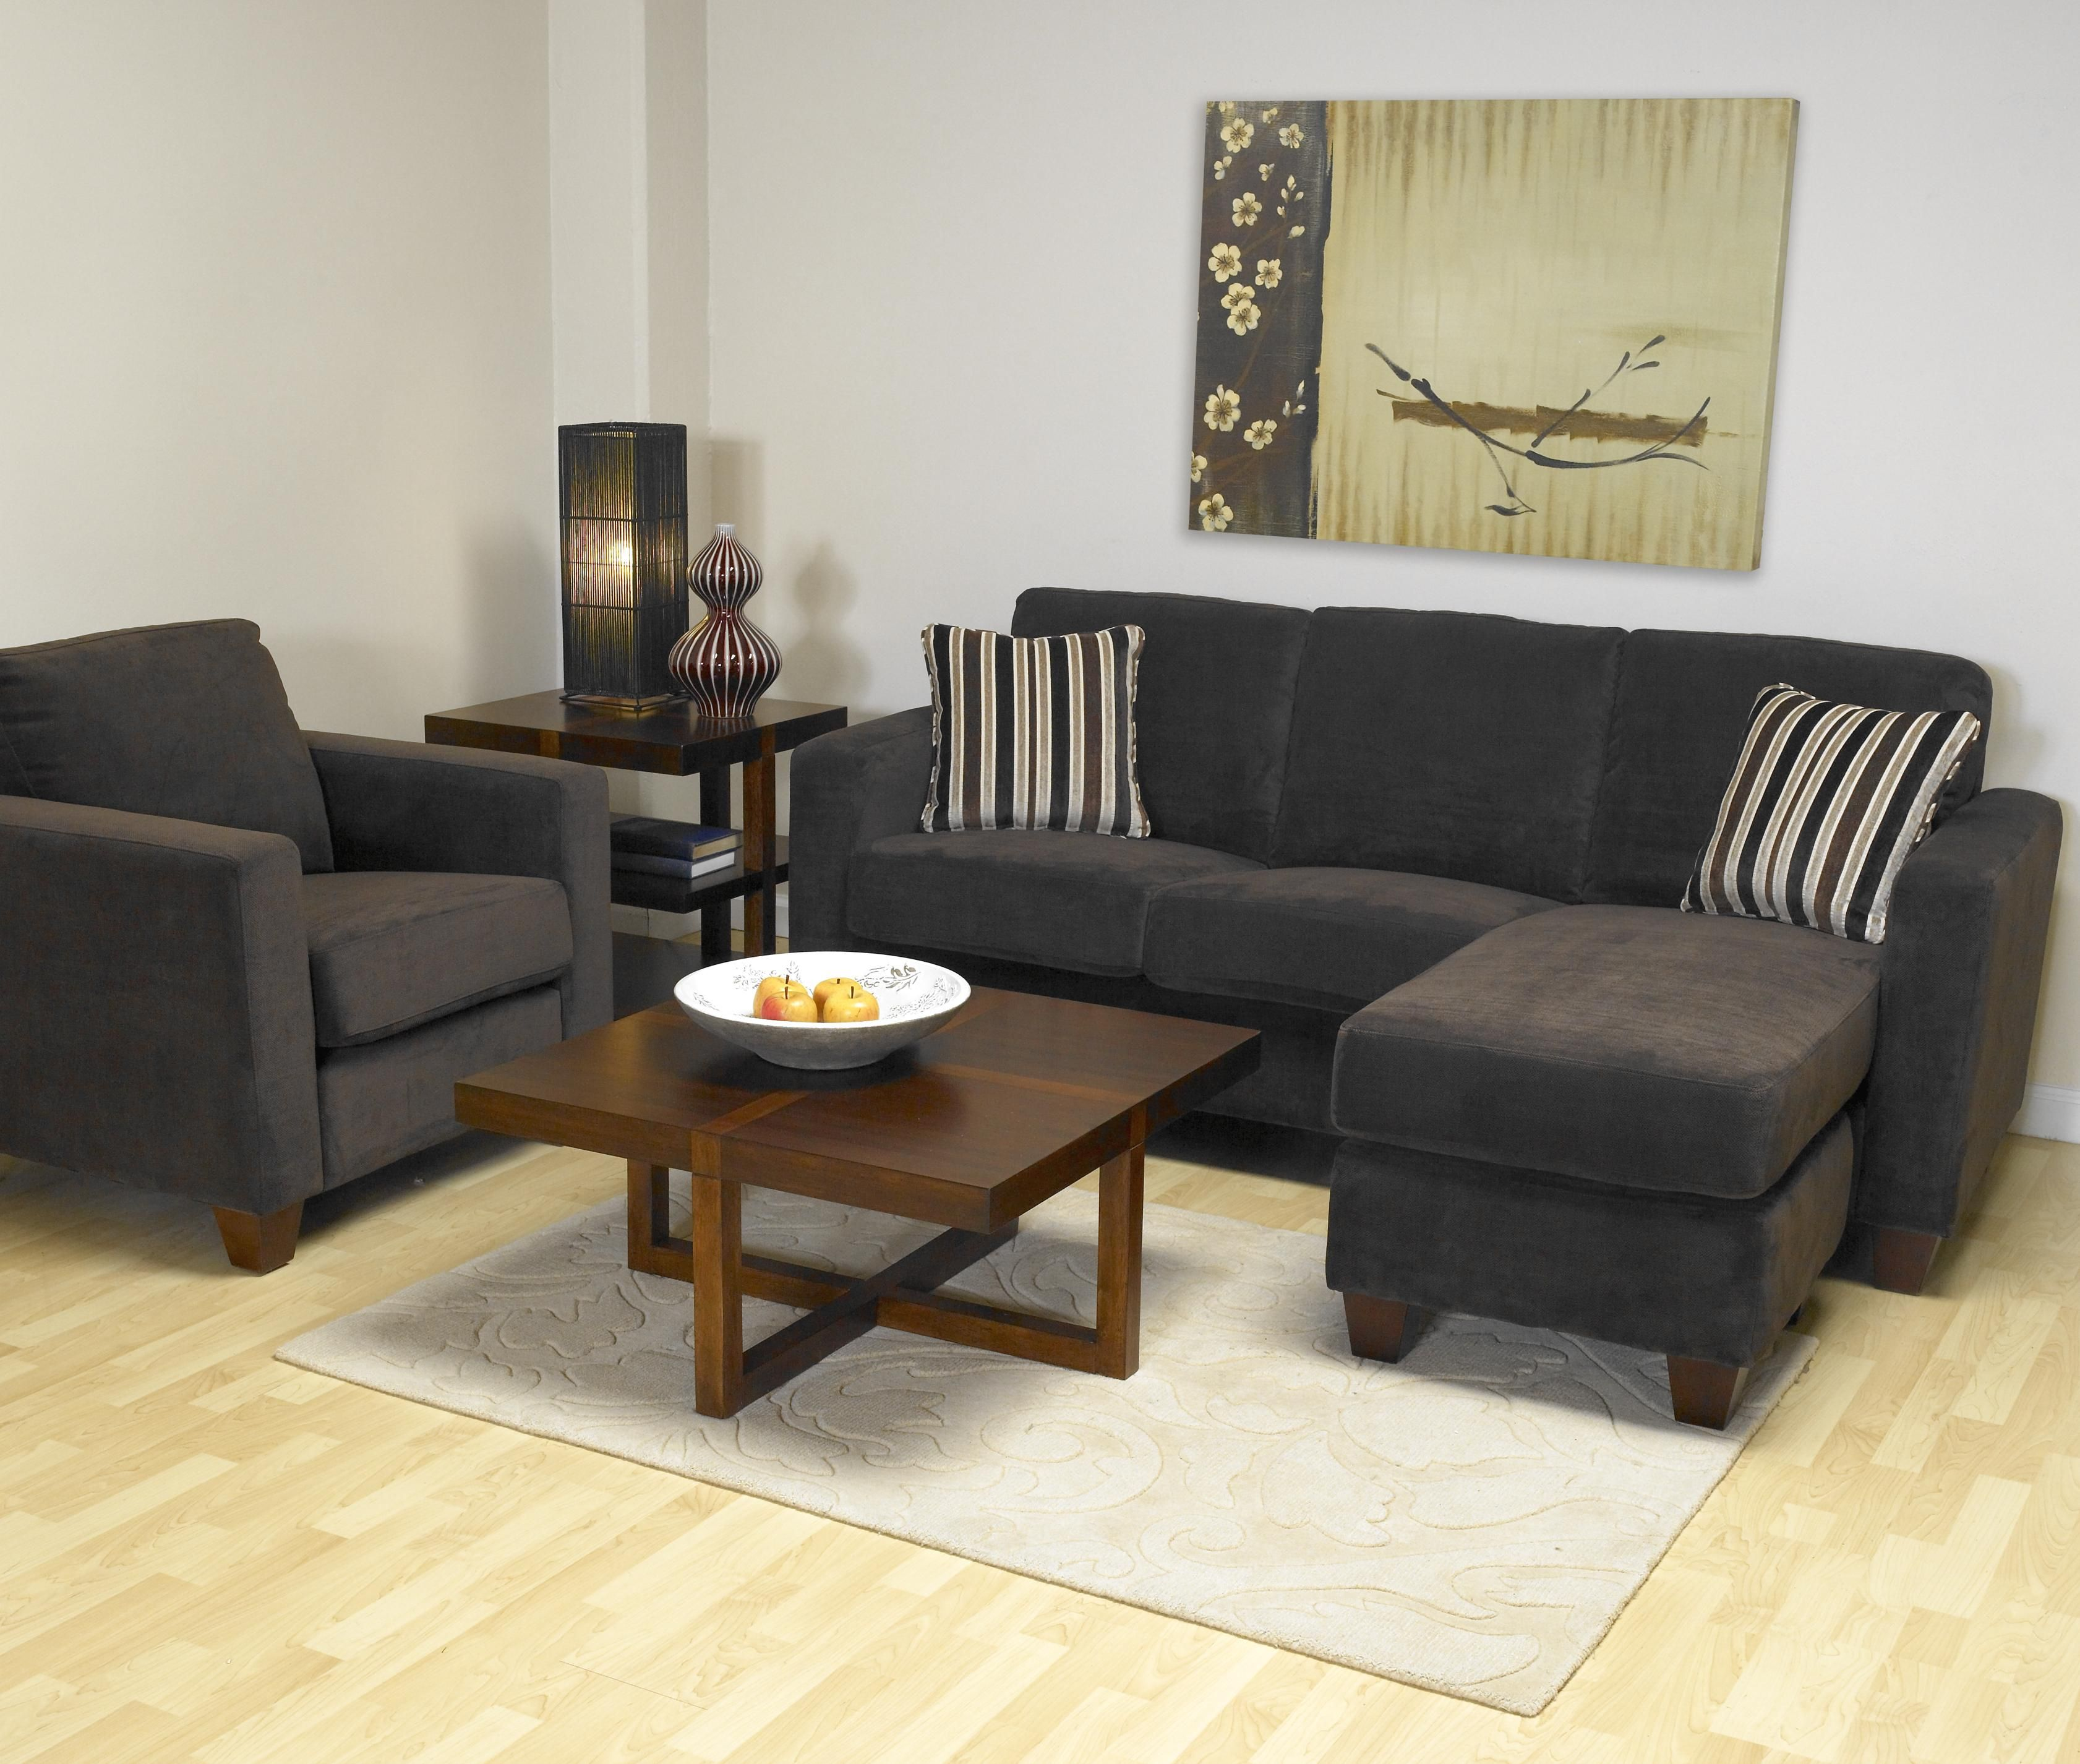 Leif Small Sofa Sectional with Comfortable Chaise Component by Stylus - Stoney Creek Furniture - Sofa : condo sectional sofa toronto - Sectionals, Sofas & Couches